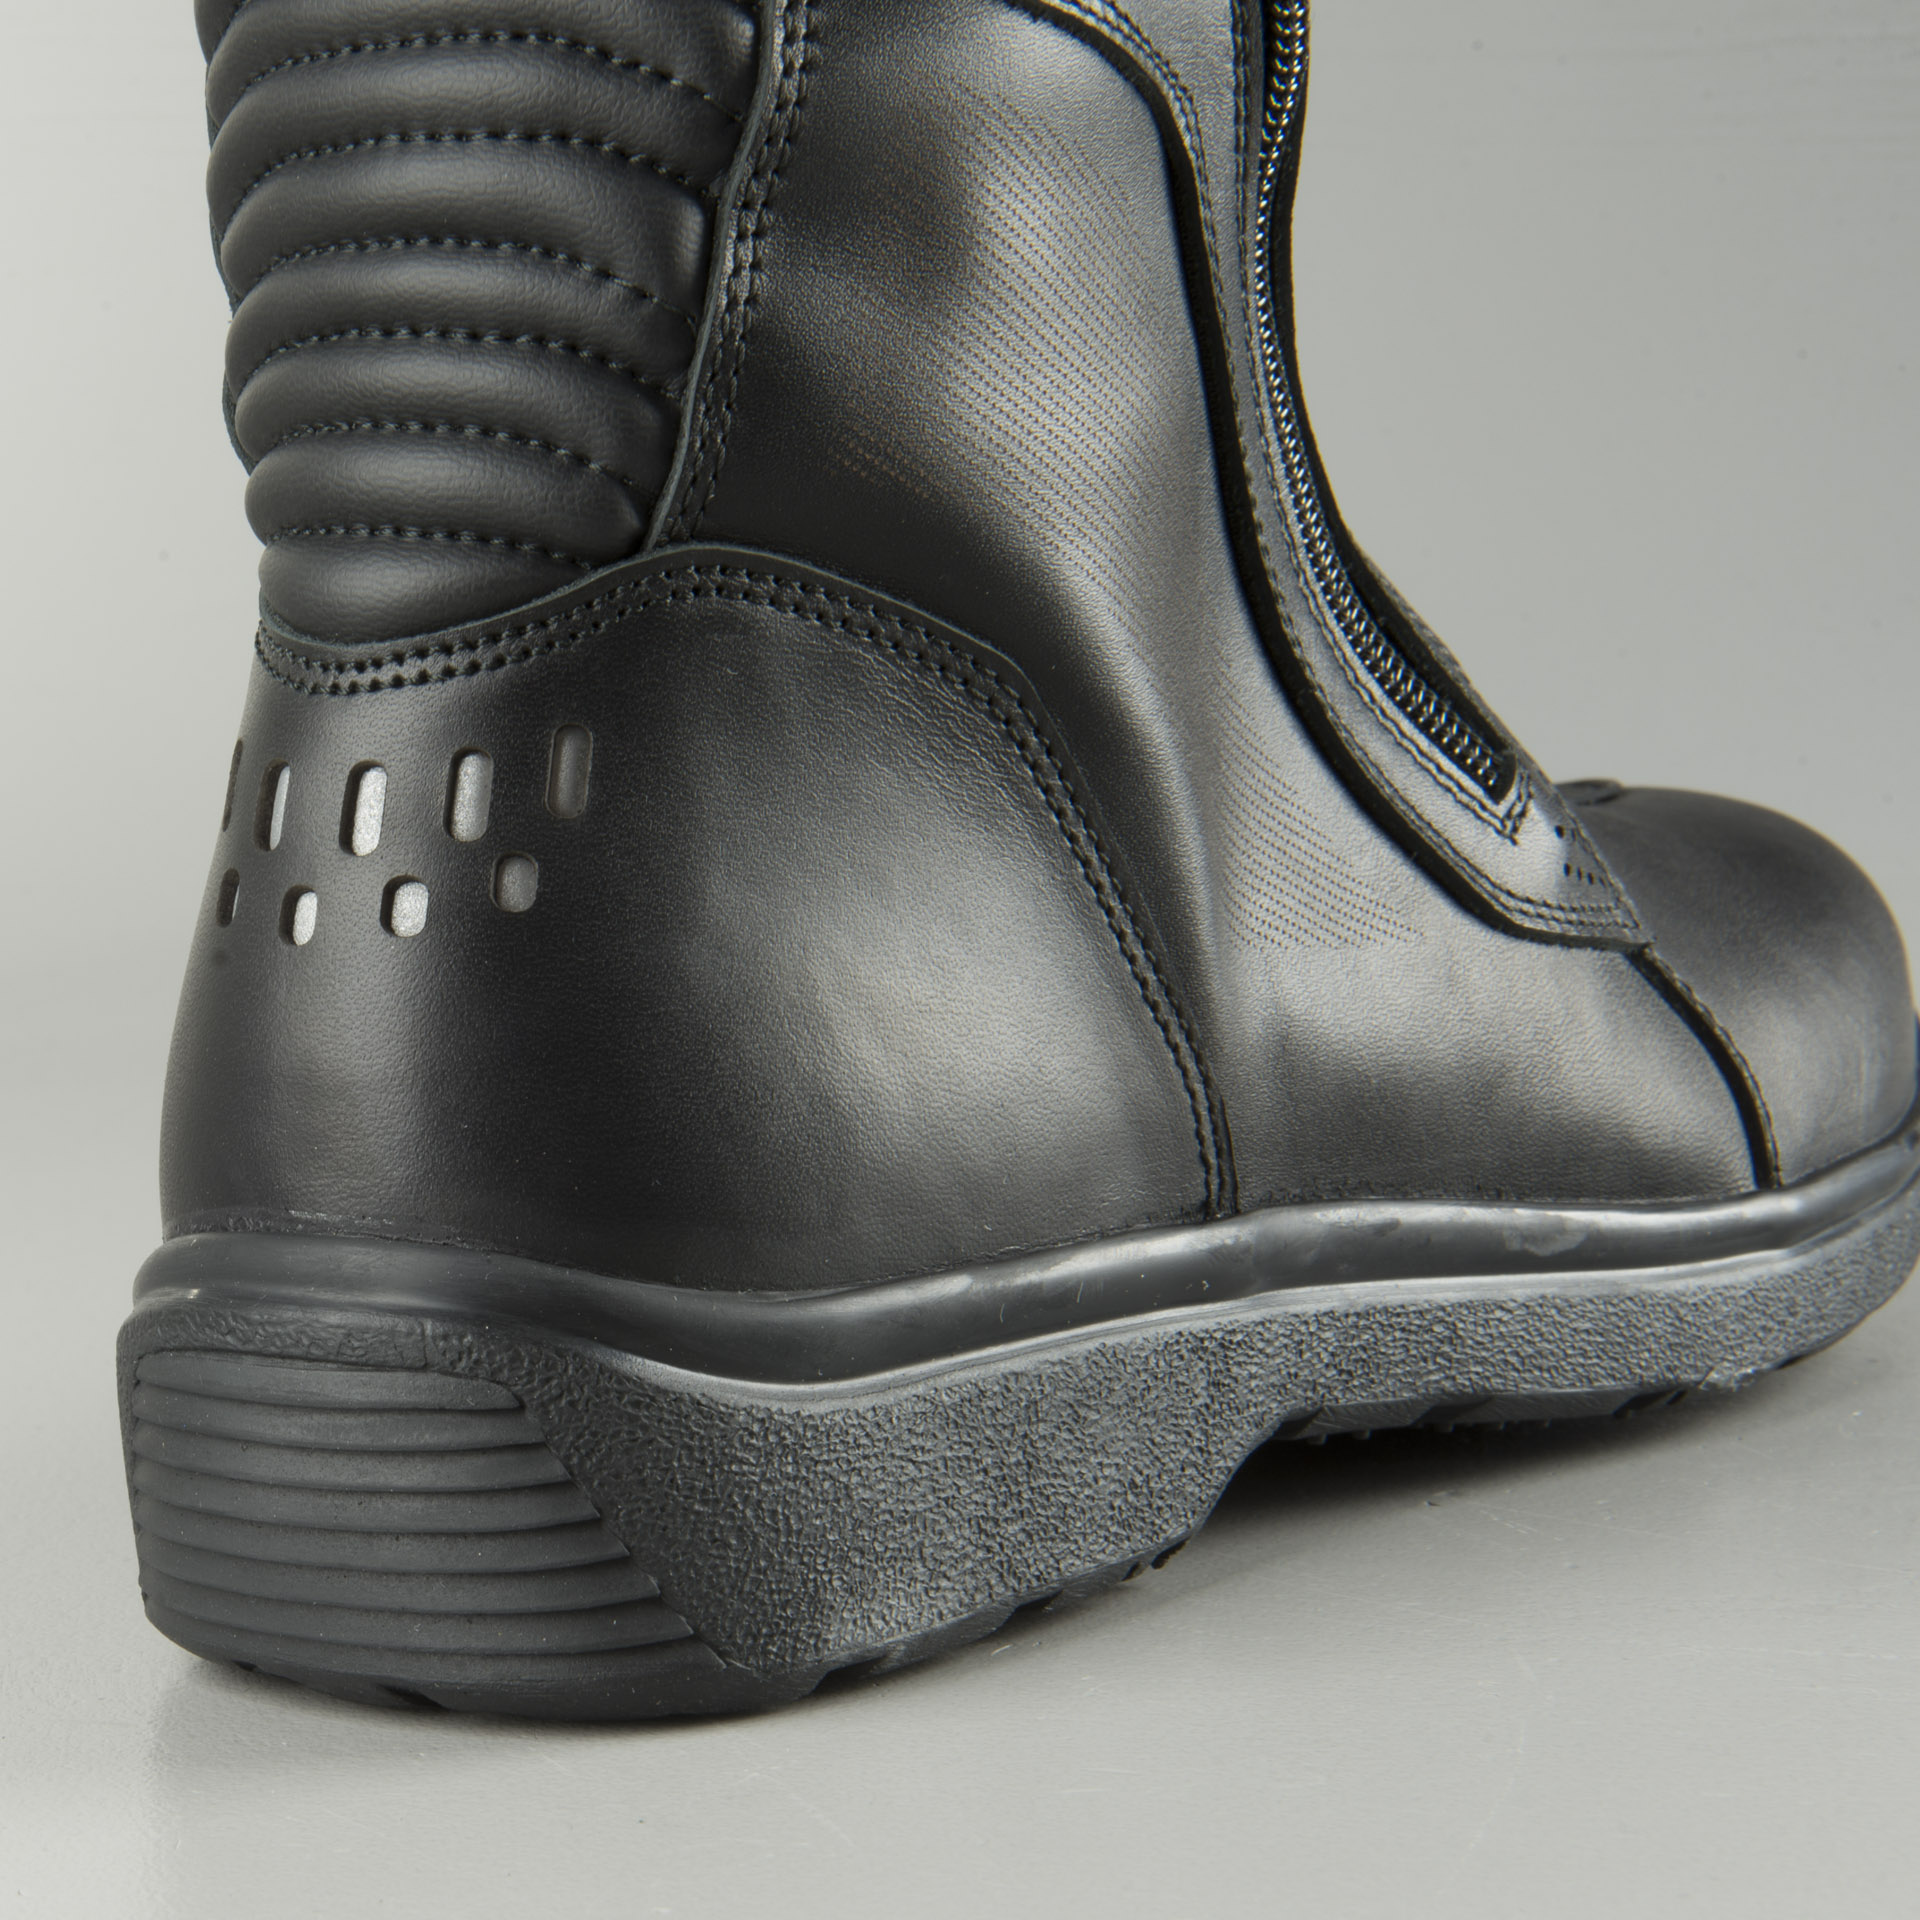 Dainese Latemar Gore Tex Boots Black Lowest Price